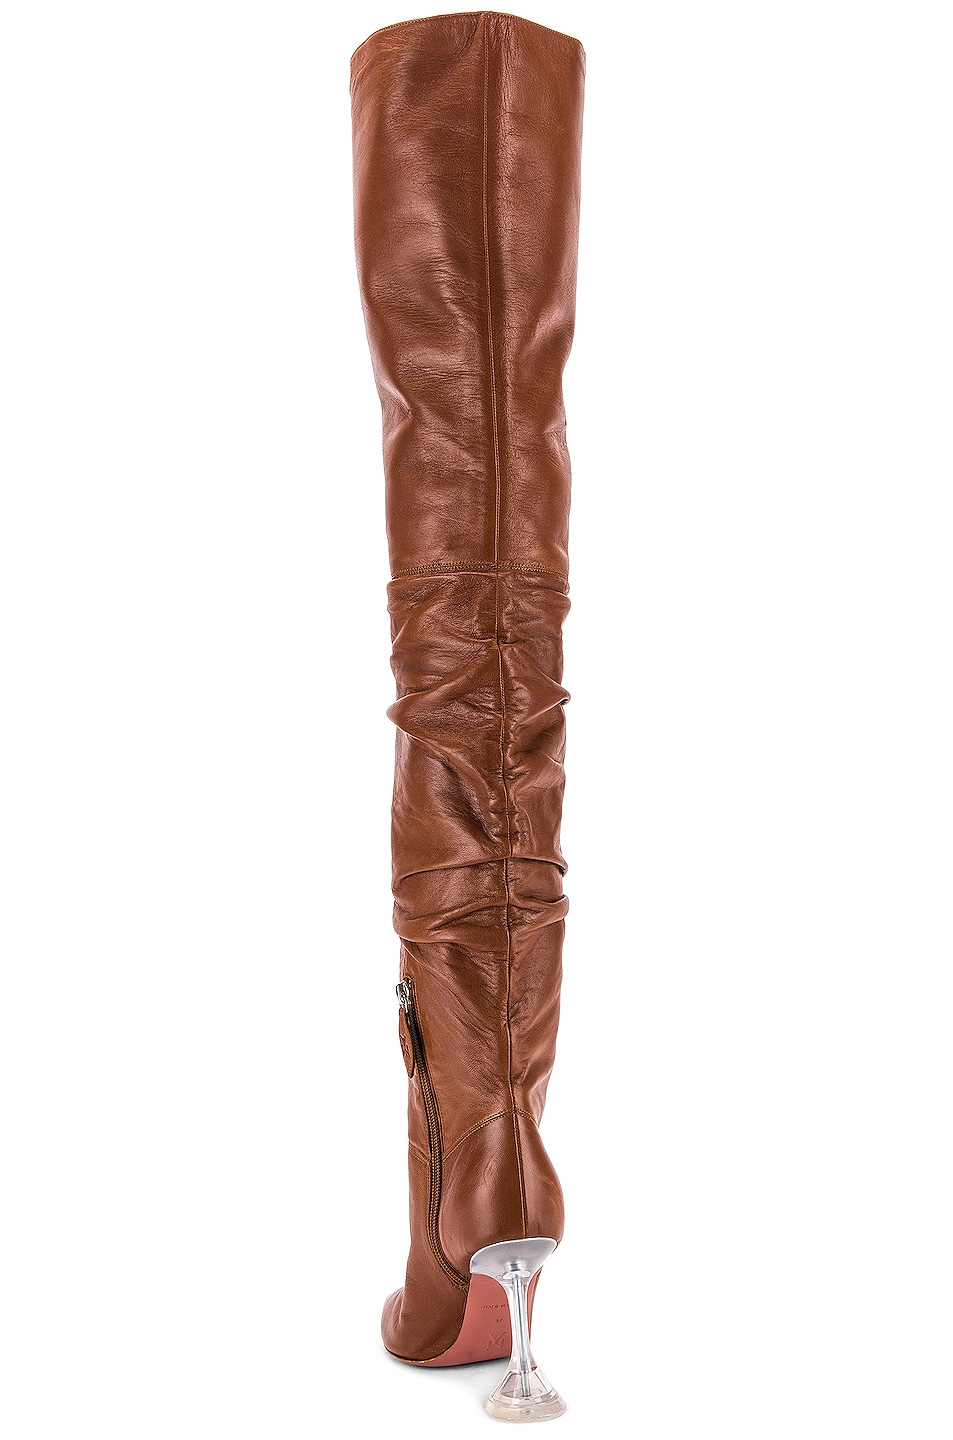 Image 3 of AMINA MUADDI Olivia Boot with Glass Heel in Camel Nappa